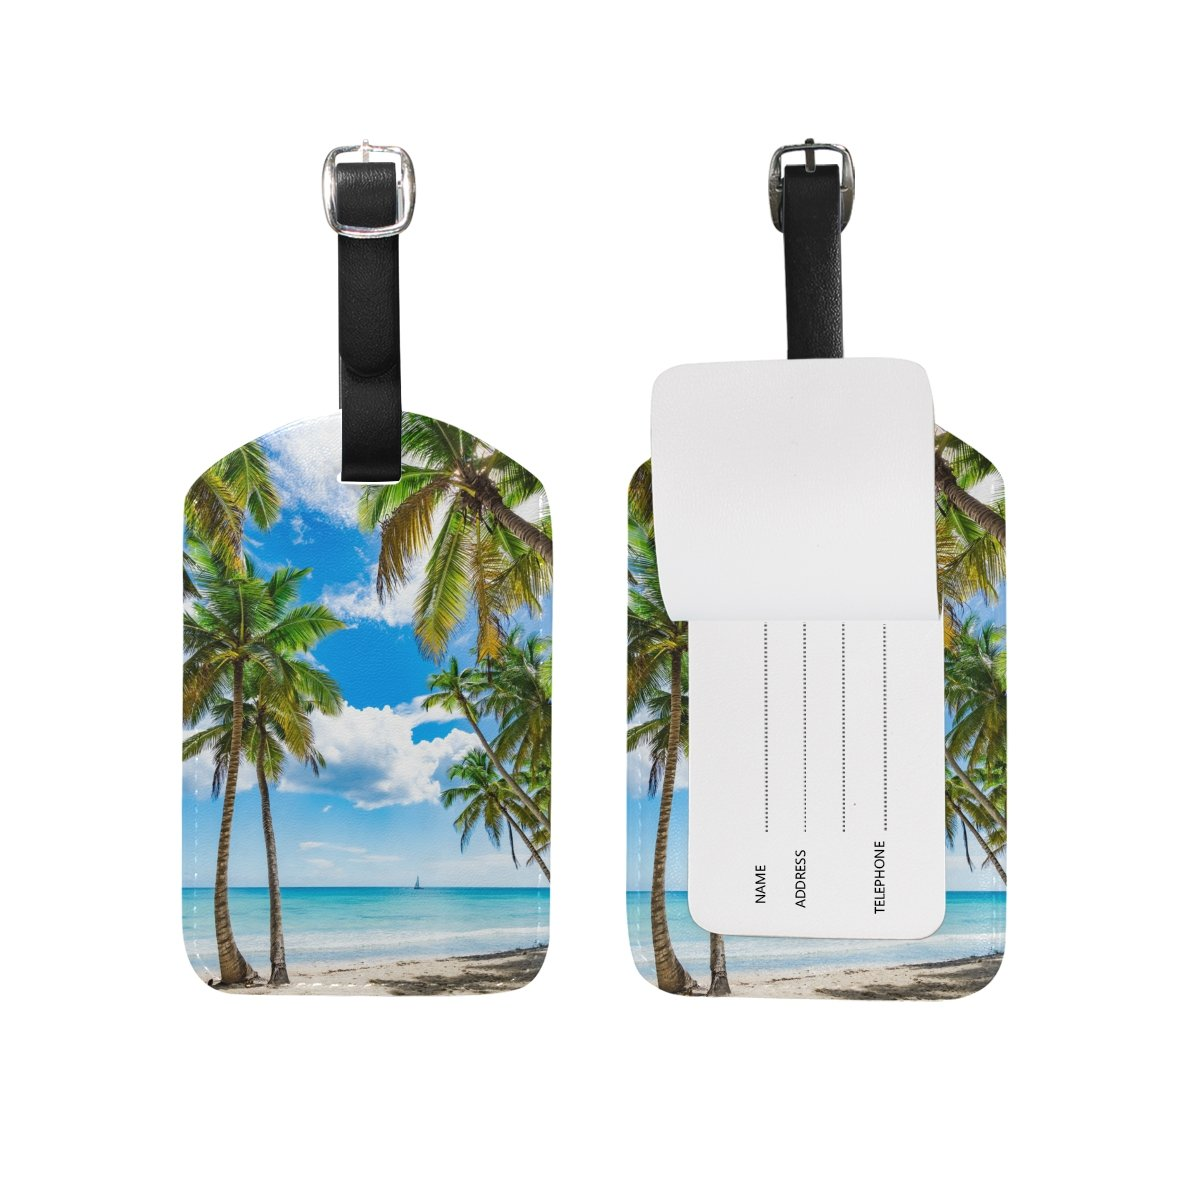 Chen Miranda Tropical Beach Luggage Tag PU Leather Travel Suitcase Label ID Tag Baggage claim tag for Trolley case Kids Bag 1 Piece